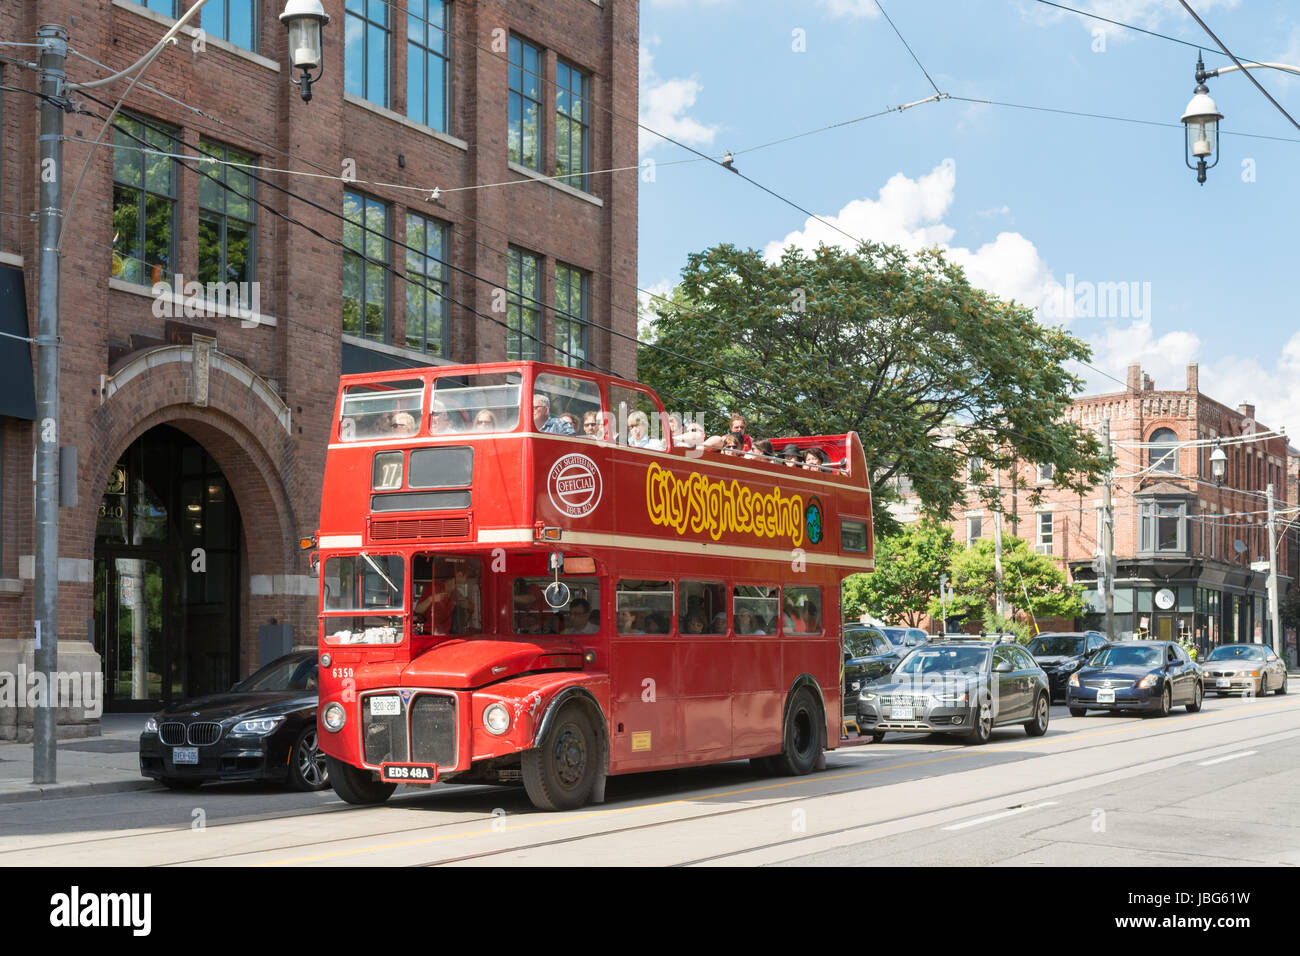 Toronto city sightseeing bus - Stock Image